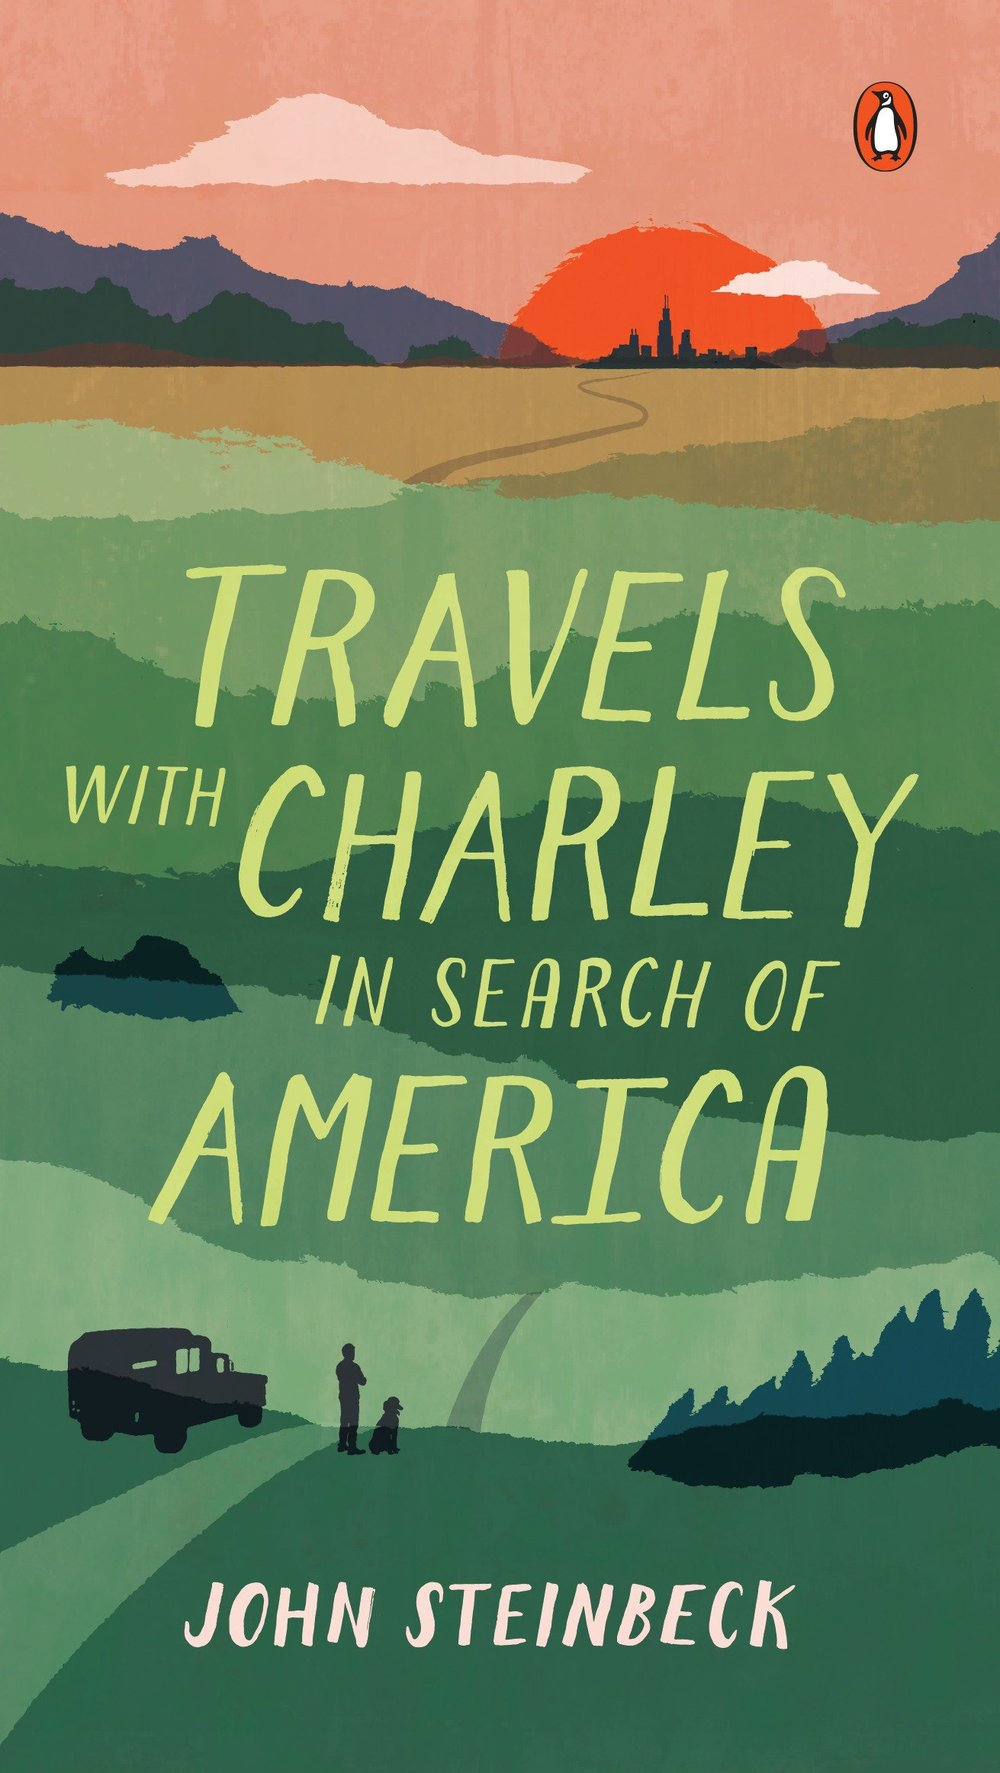 Travels with Charley.jpg